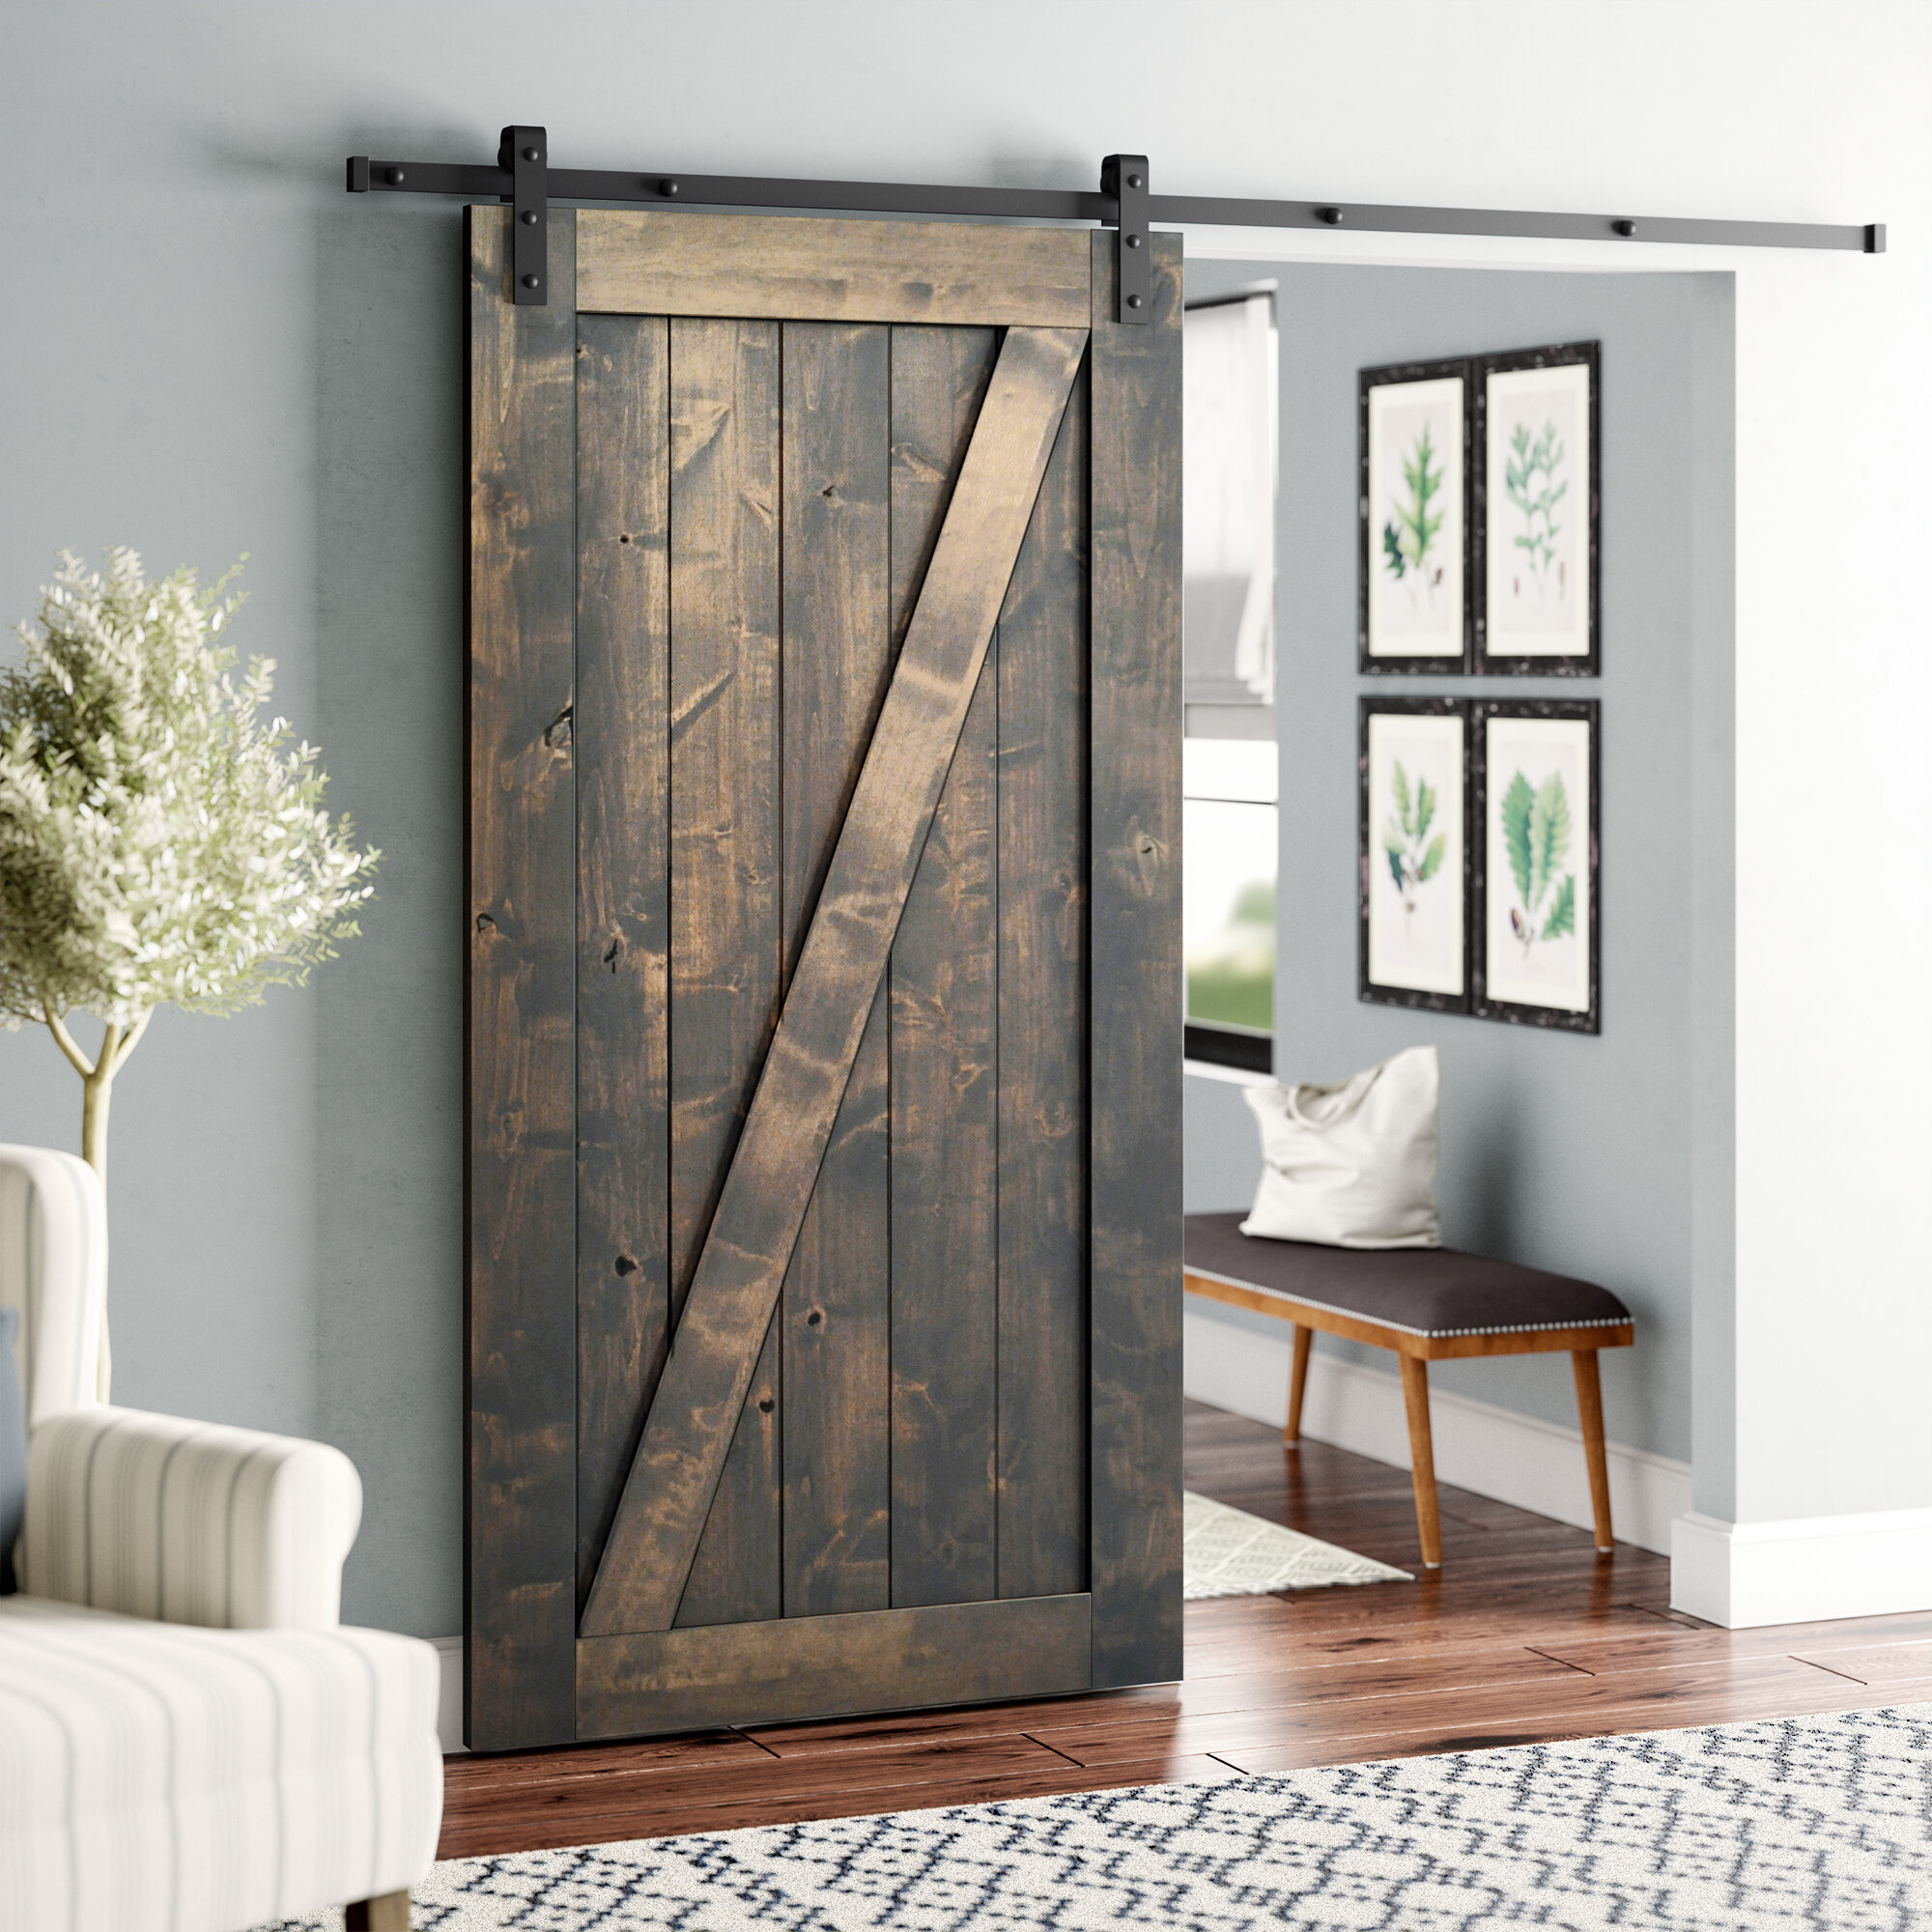 Laurel Foundry Modern Farmhouse Paneled Wood Finish Hobson Barn Door With Installation Hardware Kit Reviews Wayfair